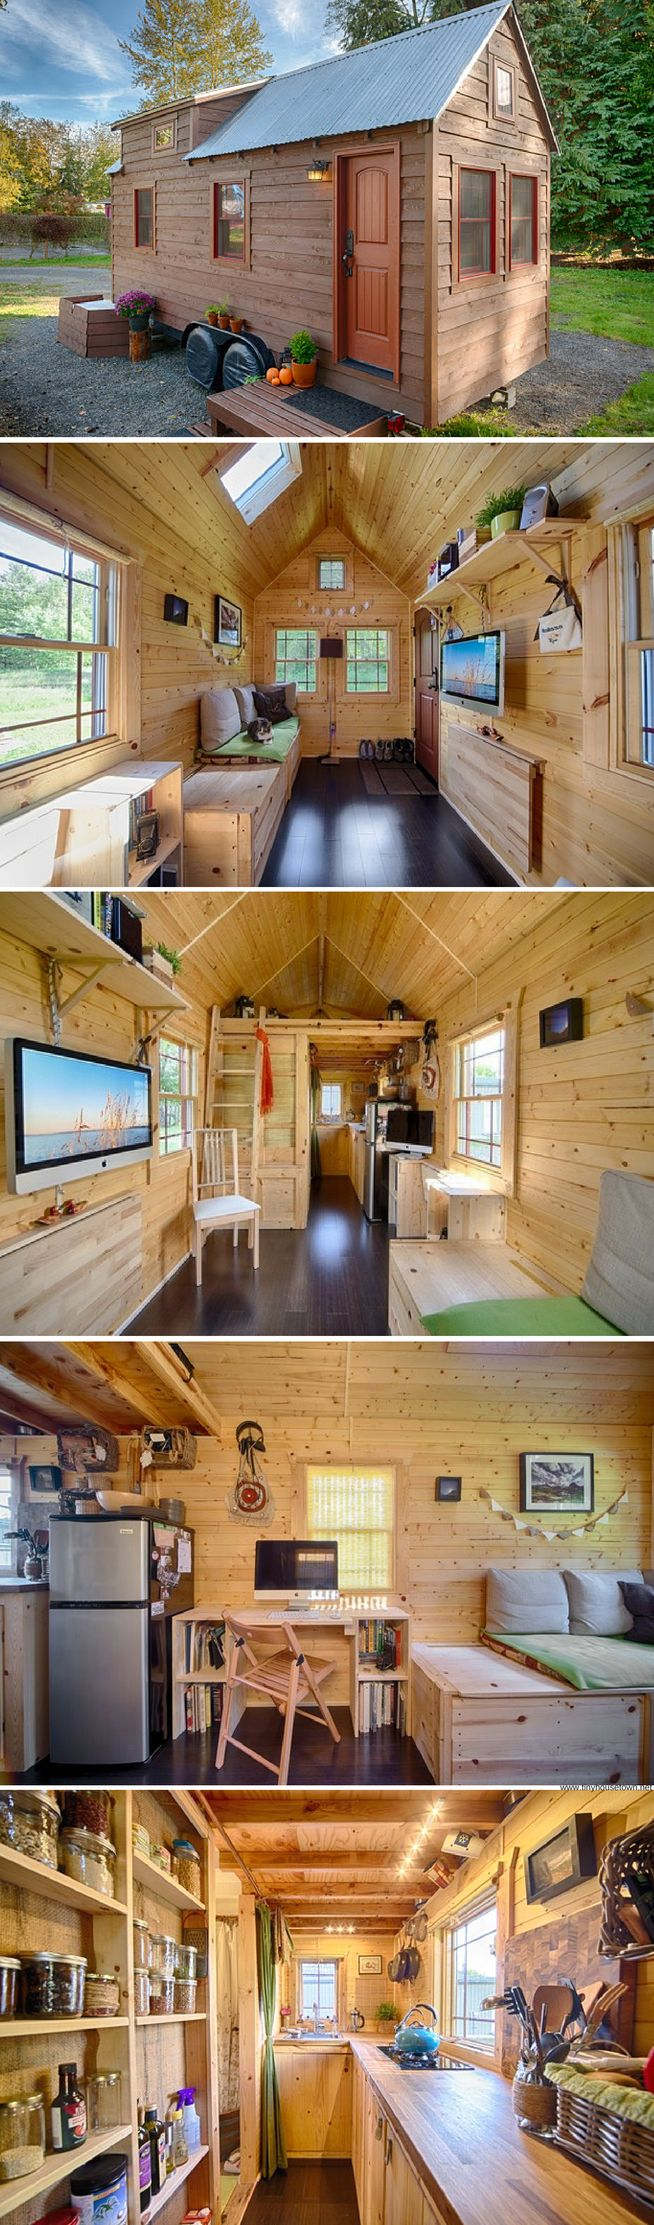 The Tach House: a 140 sq ft tiny house in Everett, WA